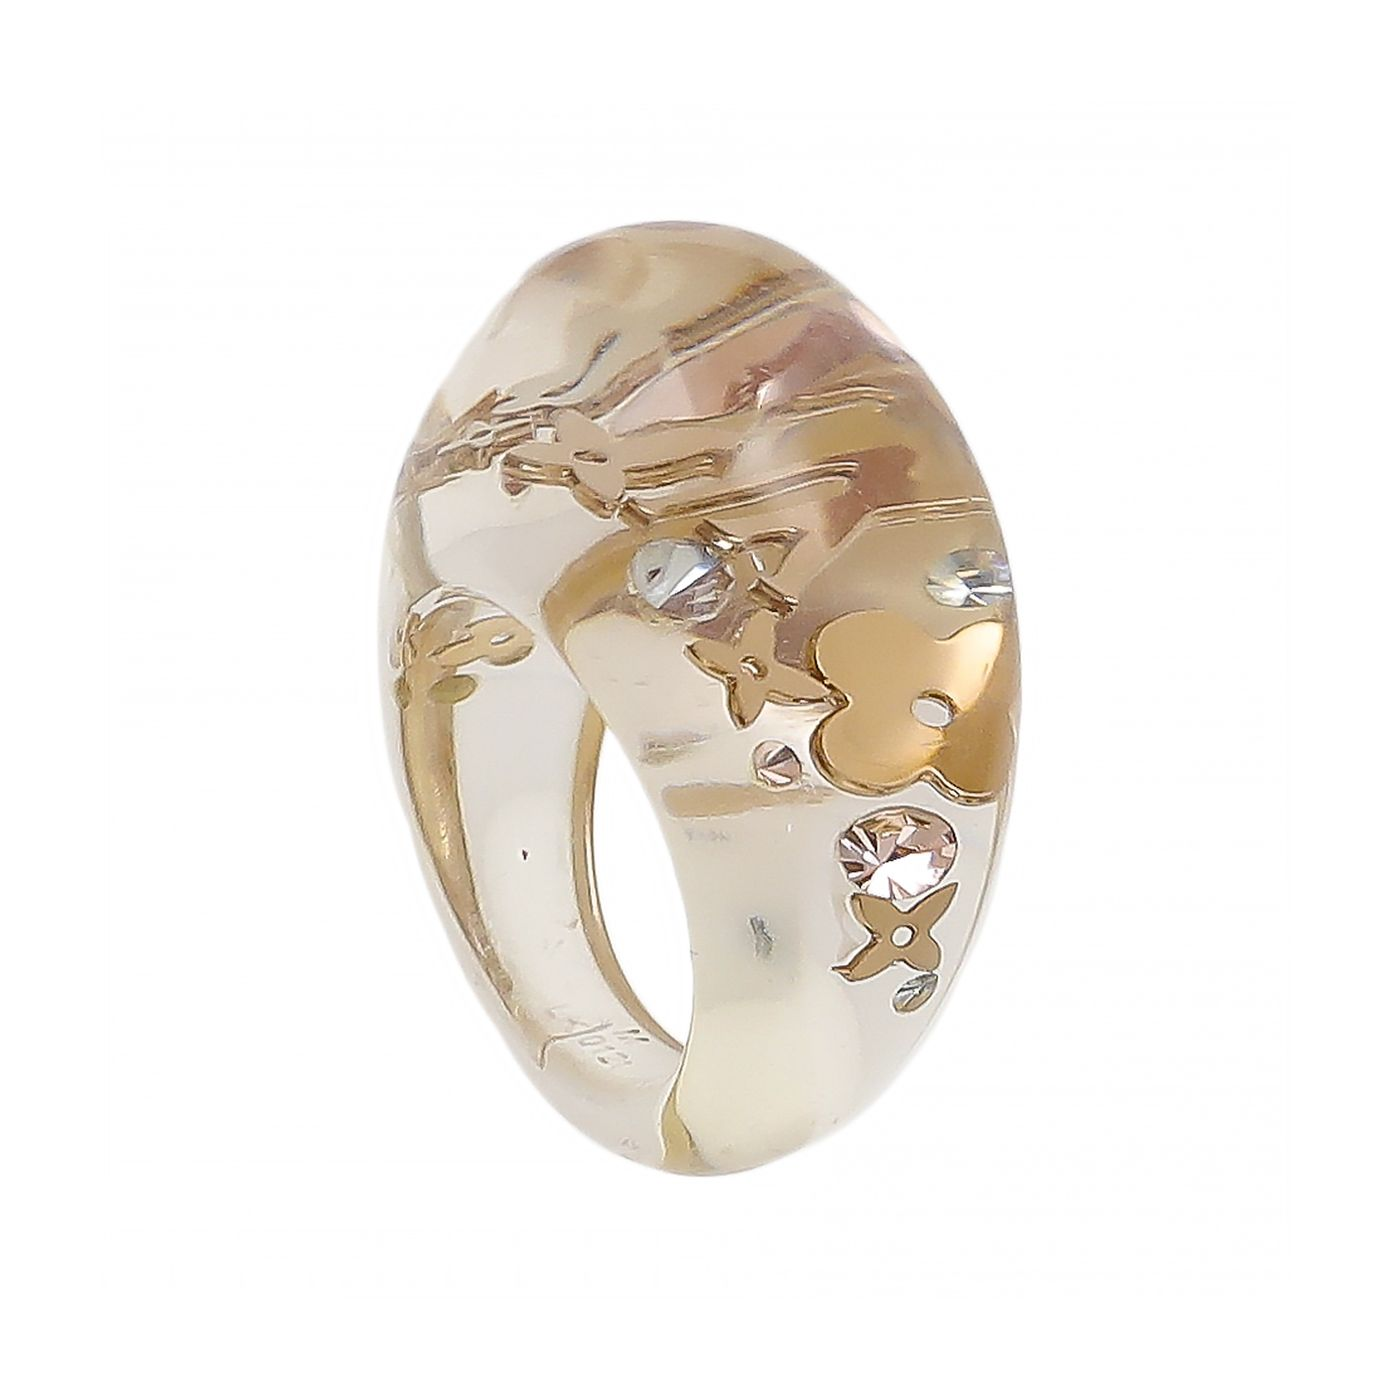 Louis Vuitton Monogram Clear Resin Inclusion Ring